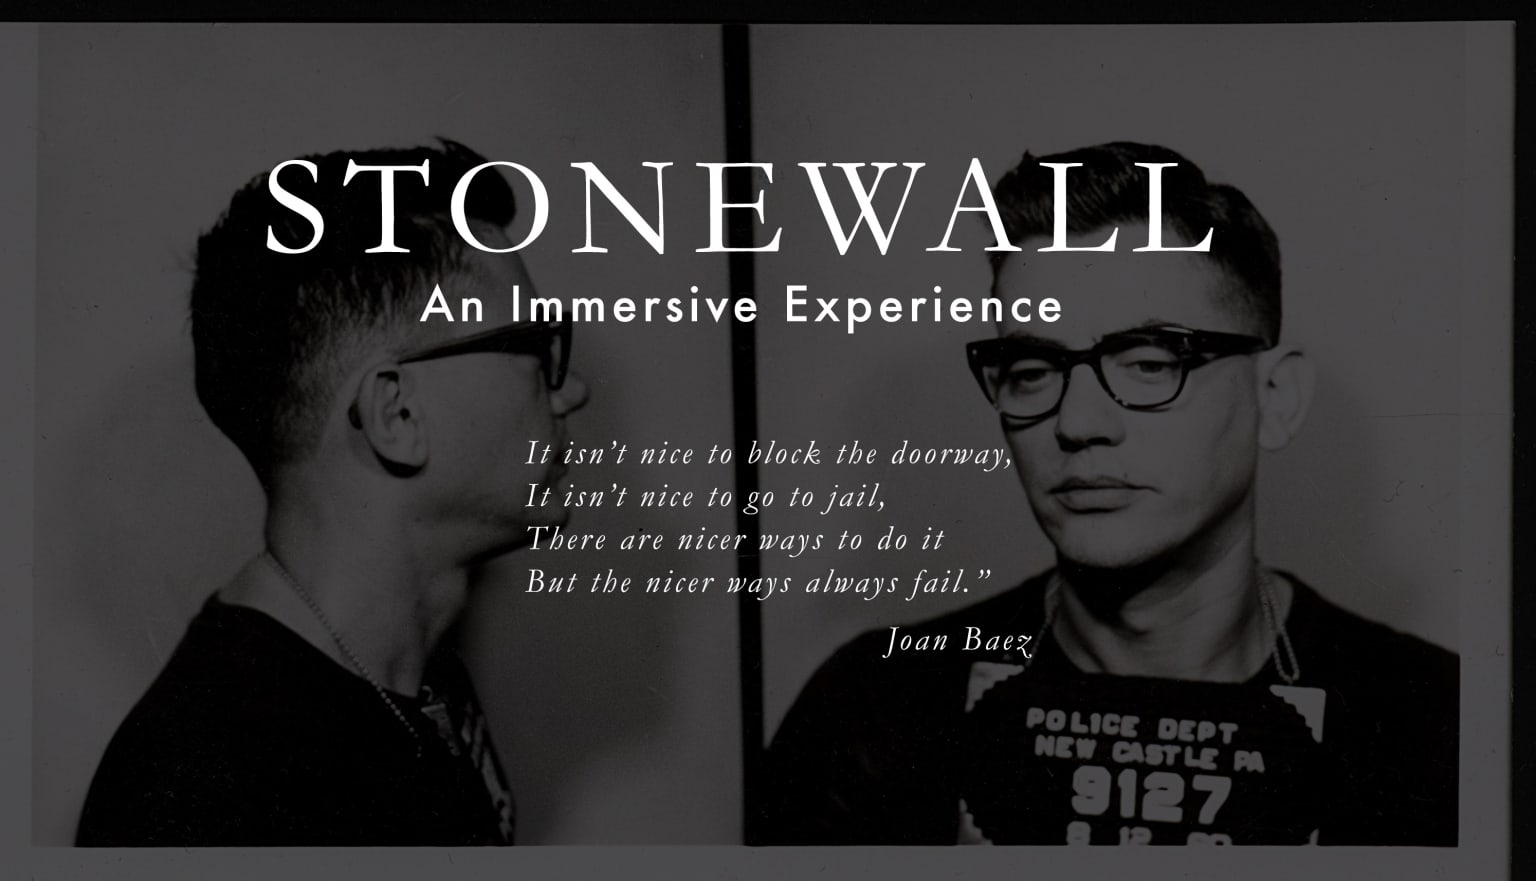 Stonewall:  An Immersive Experience